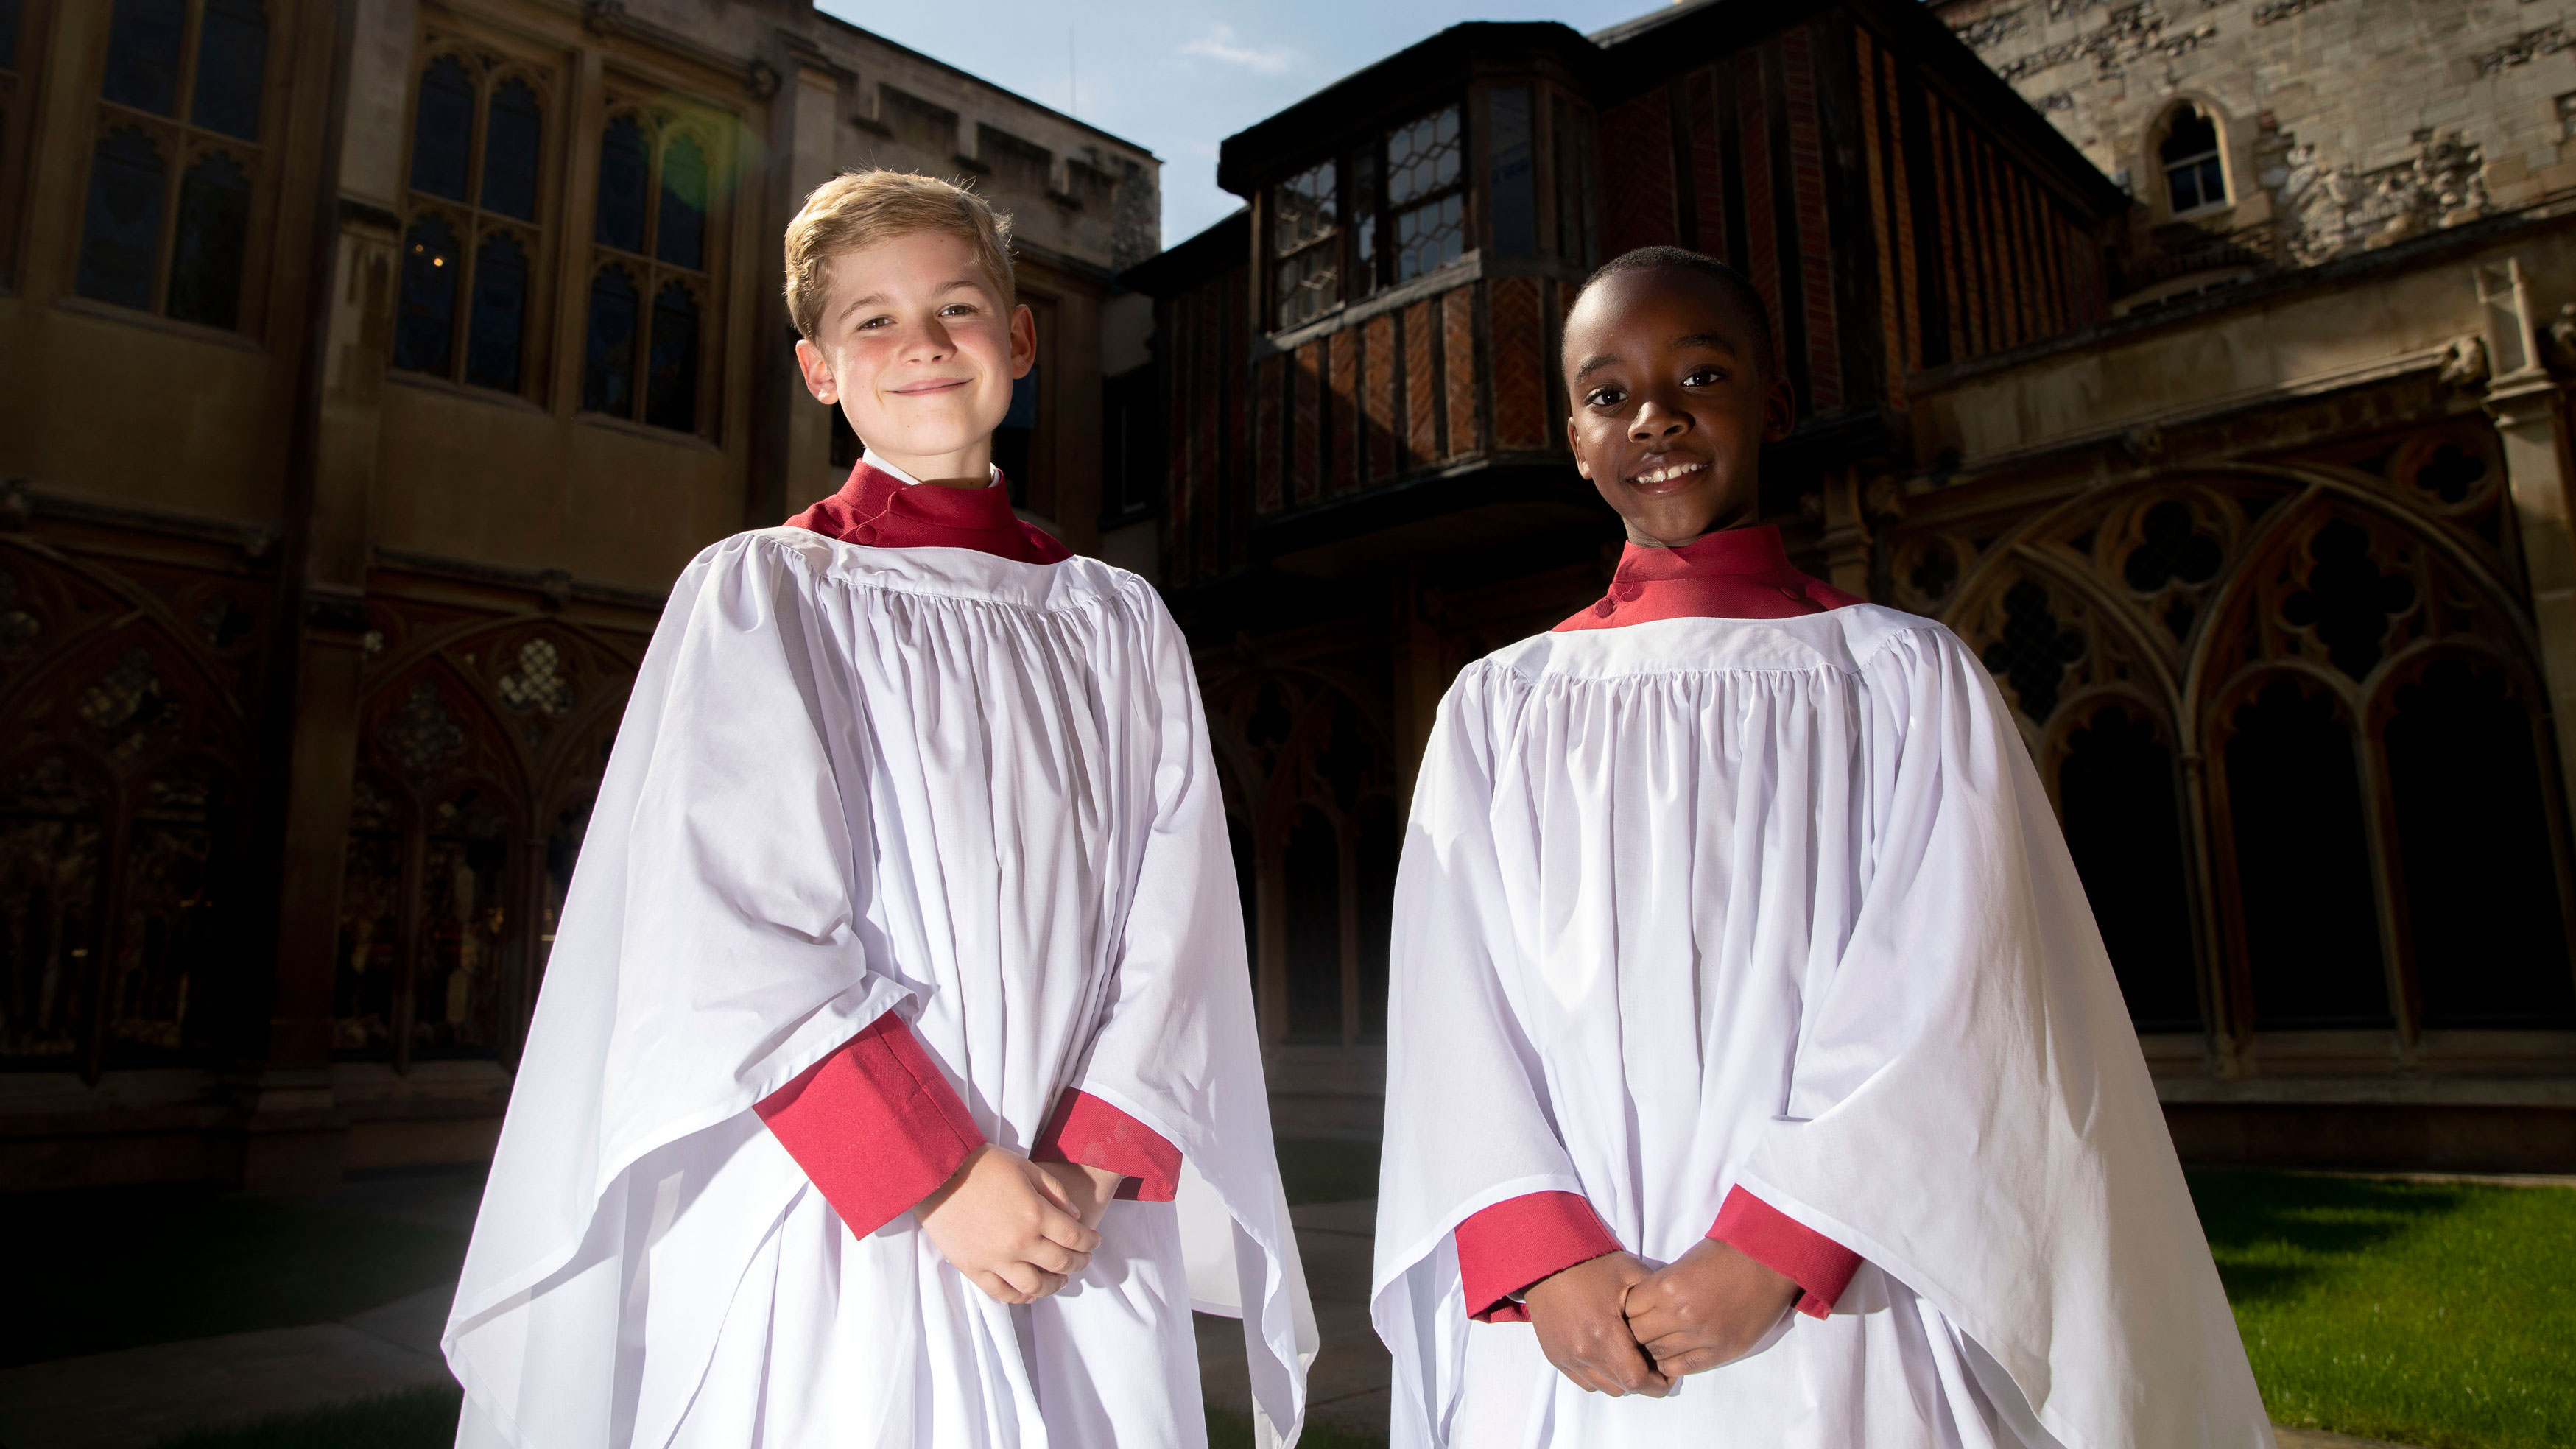 children-from-st.-georges-choir.jpg